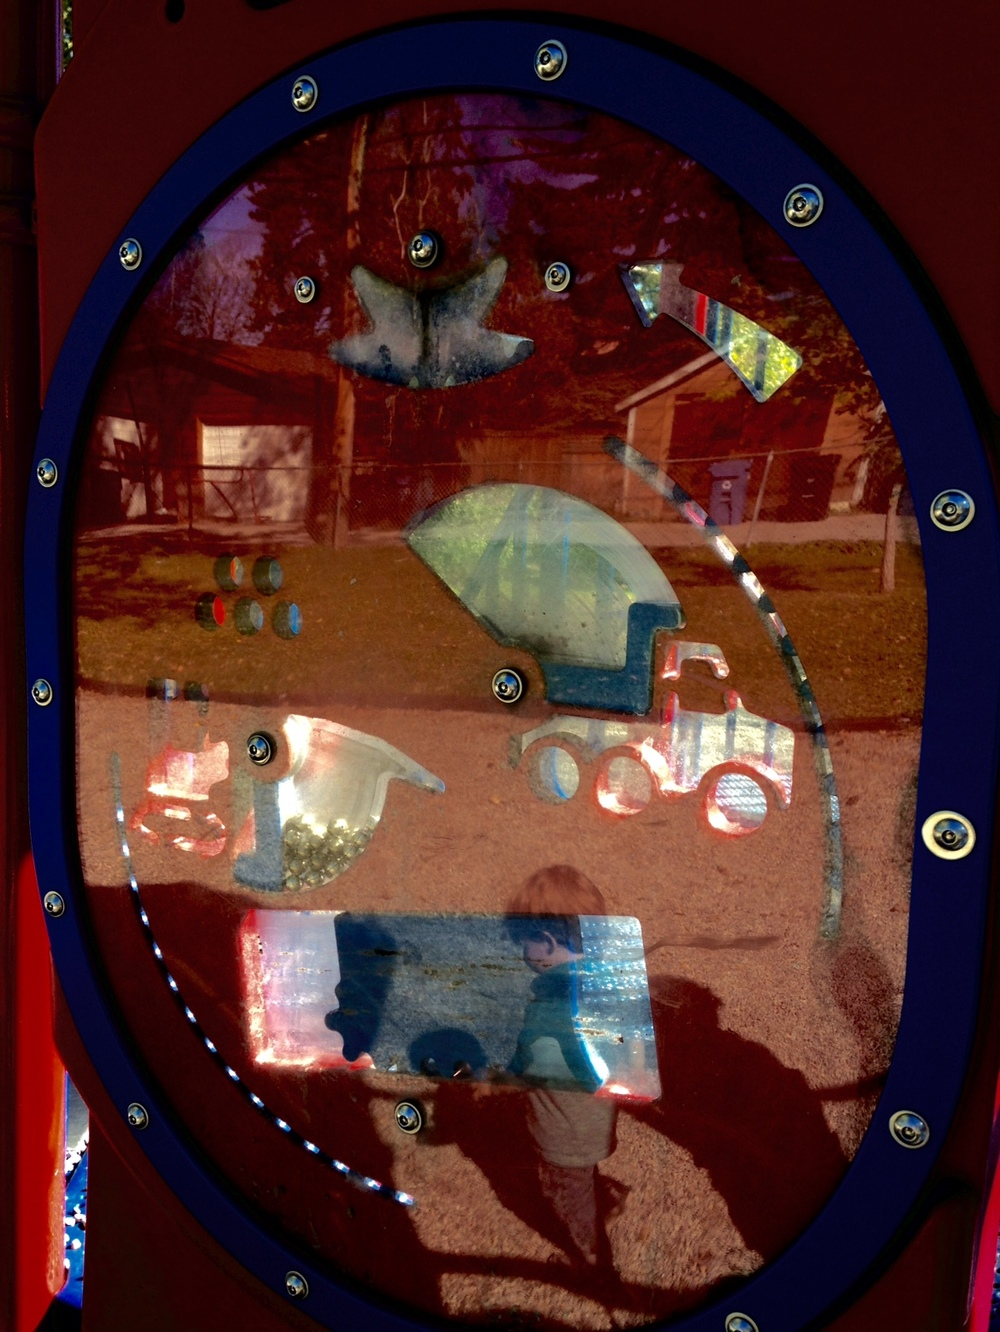 This colourful and complex collage of images is from a piece of playground equipment in the West Hillhurst in Calgary. I love it when I find images like this in unexpected places.